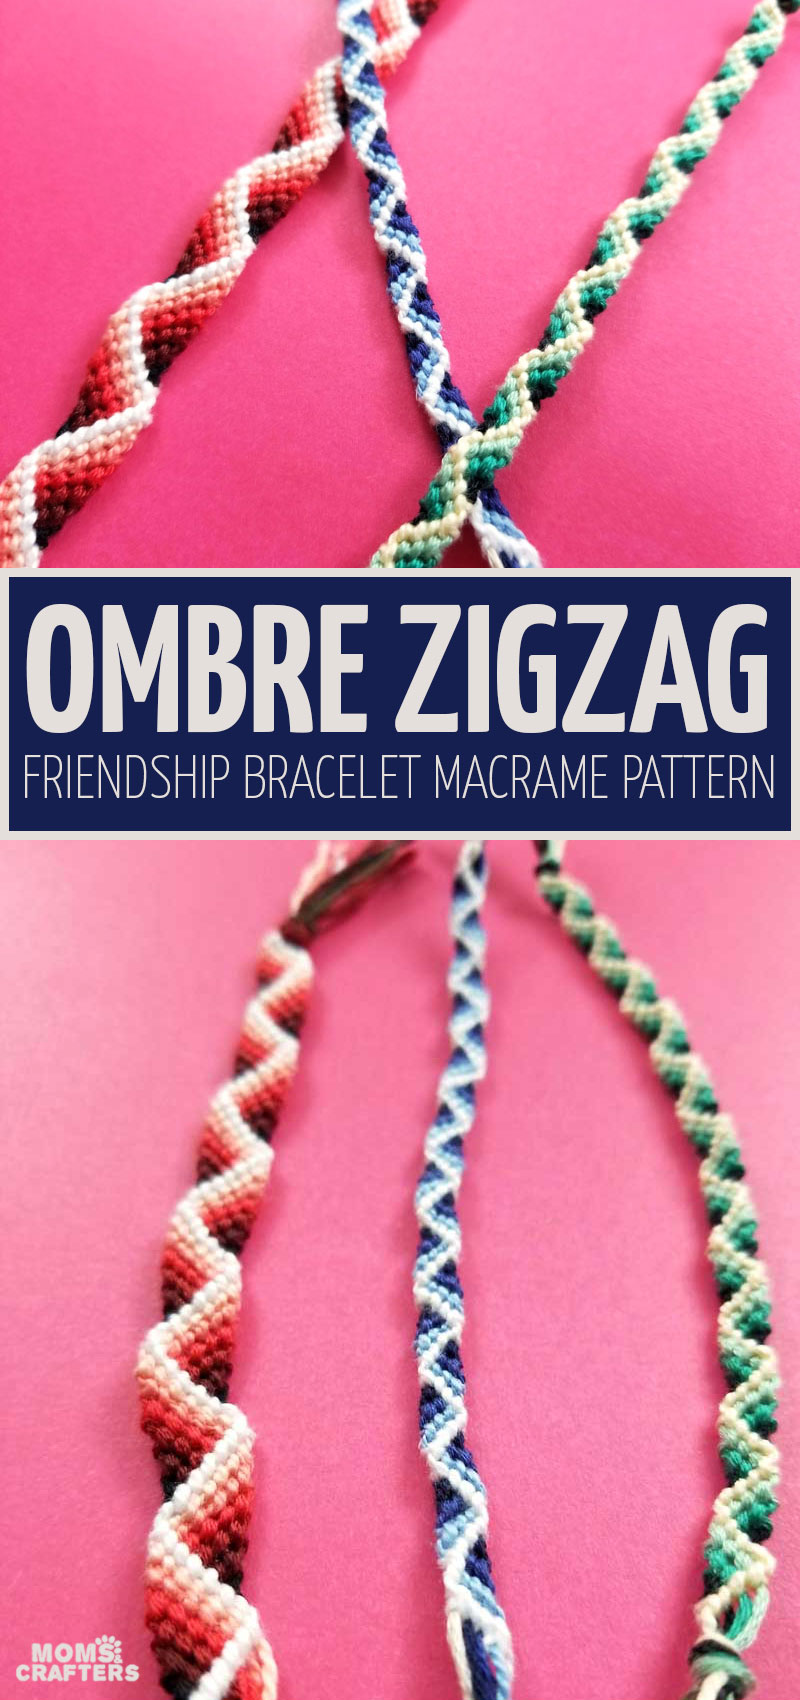 Click for a beautiful zig zag friendship bracelet pattern - an ombre macrame bracelet with a 3D ribbon effect! This stunning friendship bracelet knotting tutorial is appropriate for tweens, teens and even adults.